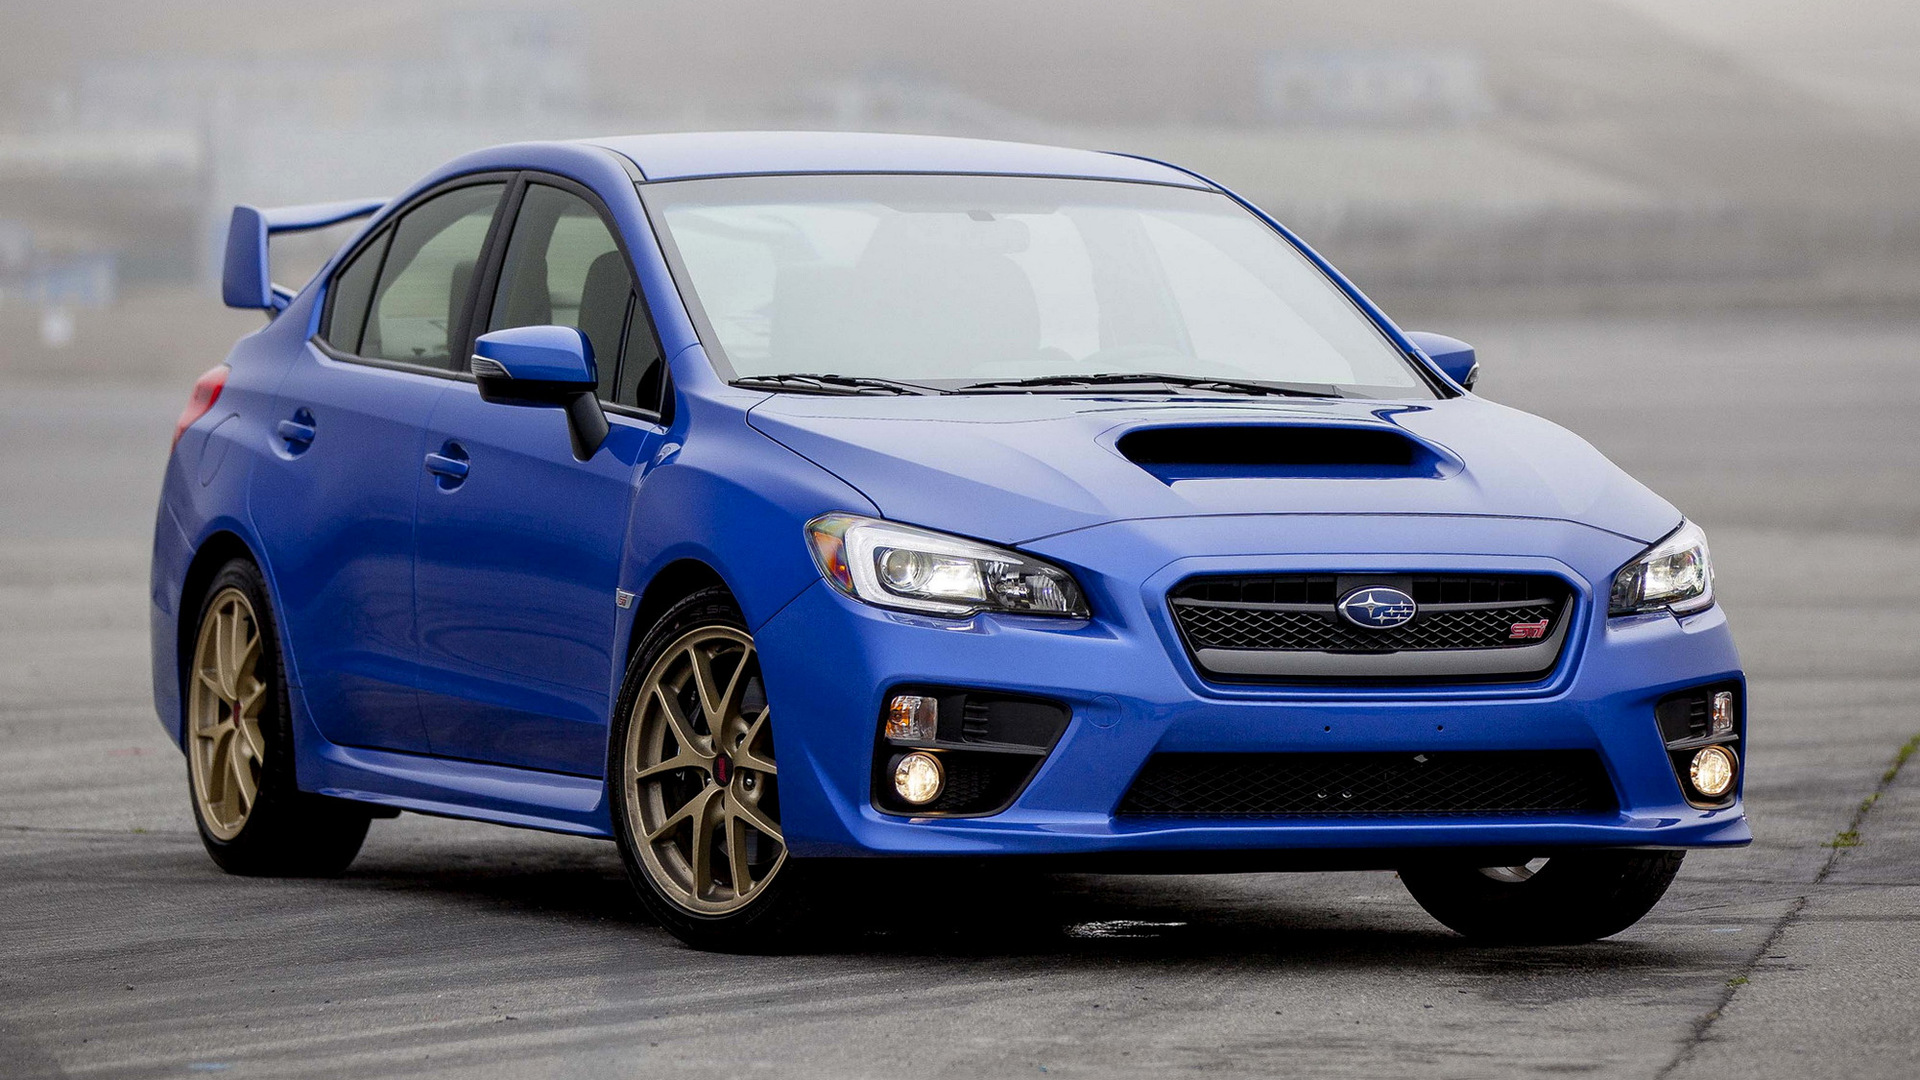 Hd Bmw Car Wallpapers 1920x1080 2014 Subaru Wrx Sti Us Wallpapers And Hd Images Car